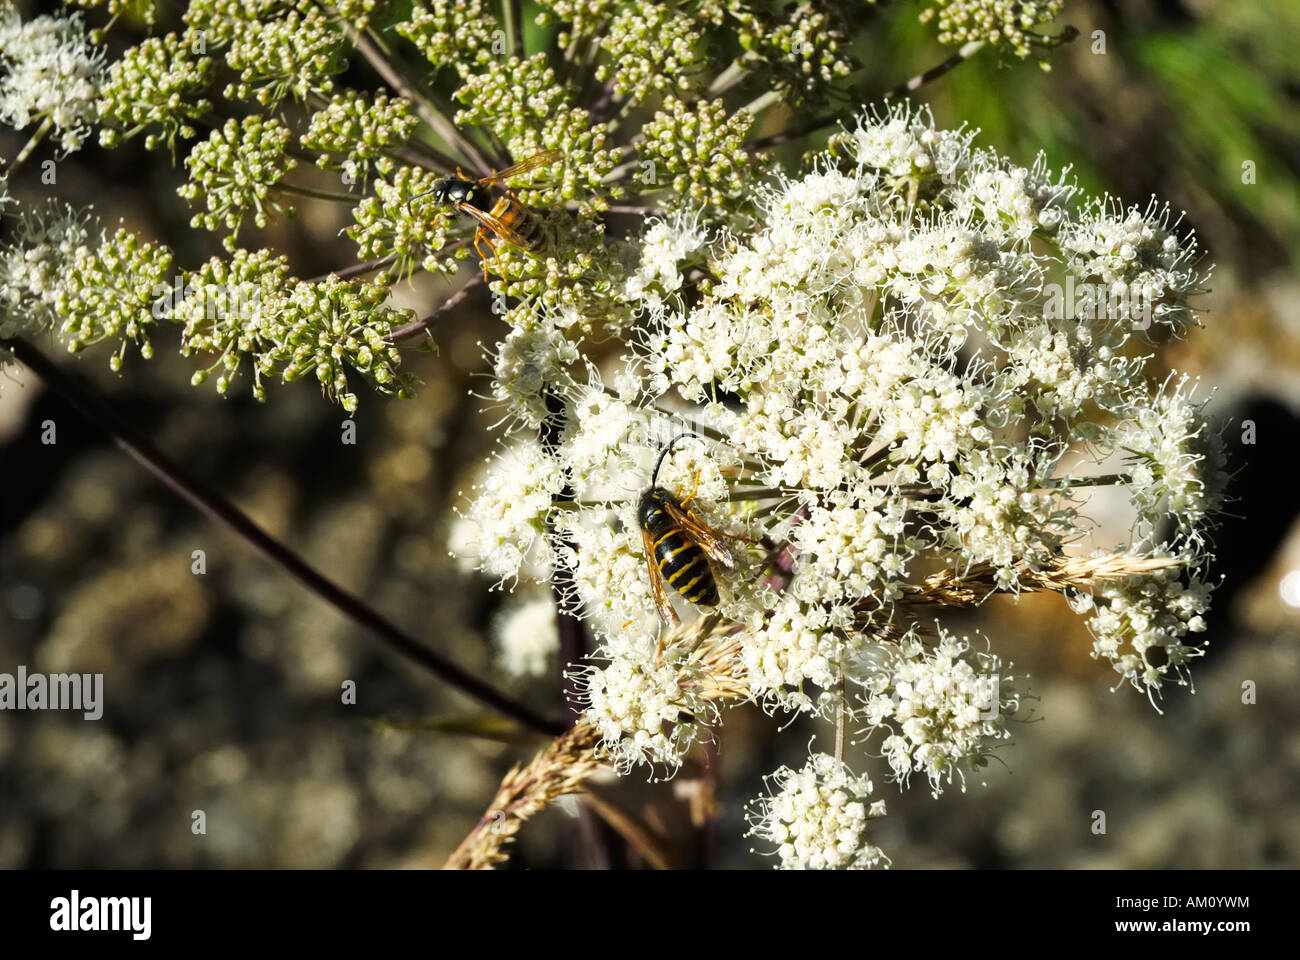 2 species of wasps meet on umbels of angelica silvestris apiaceae to find nectar - Stock Image